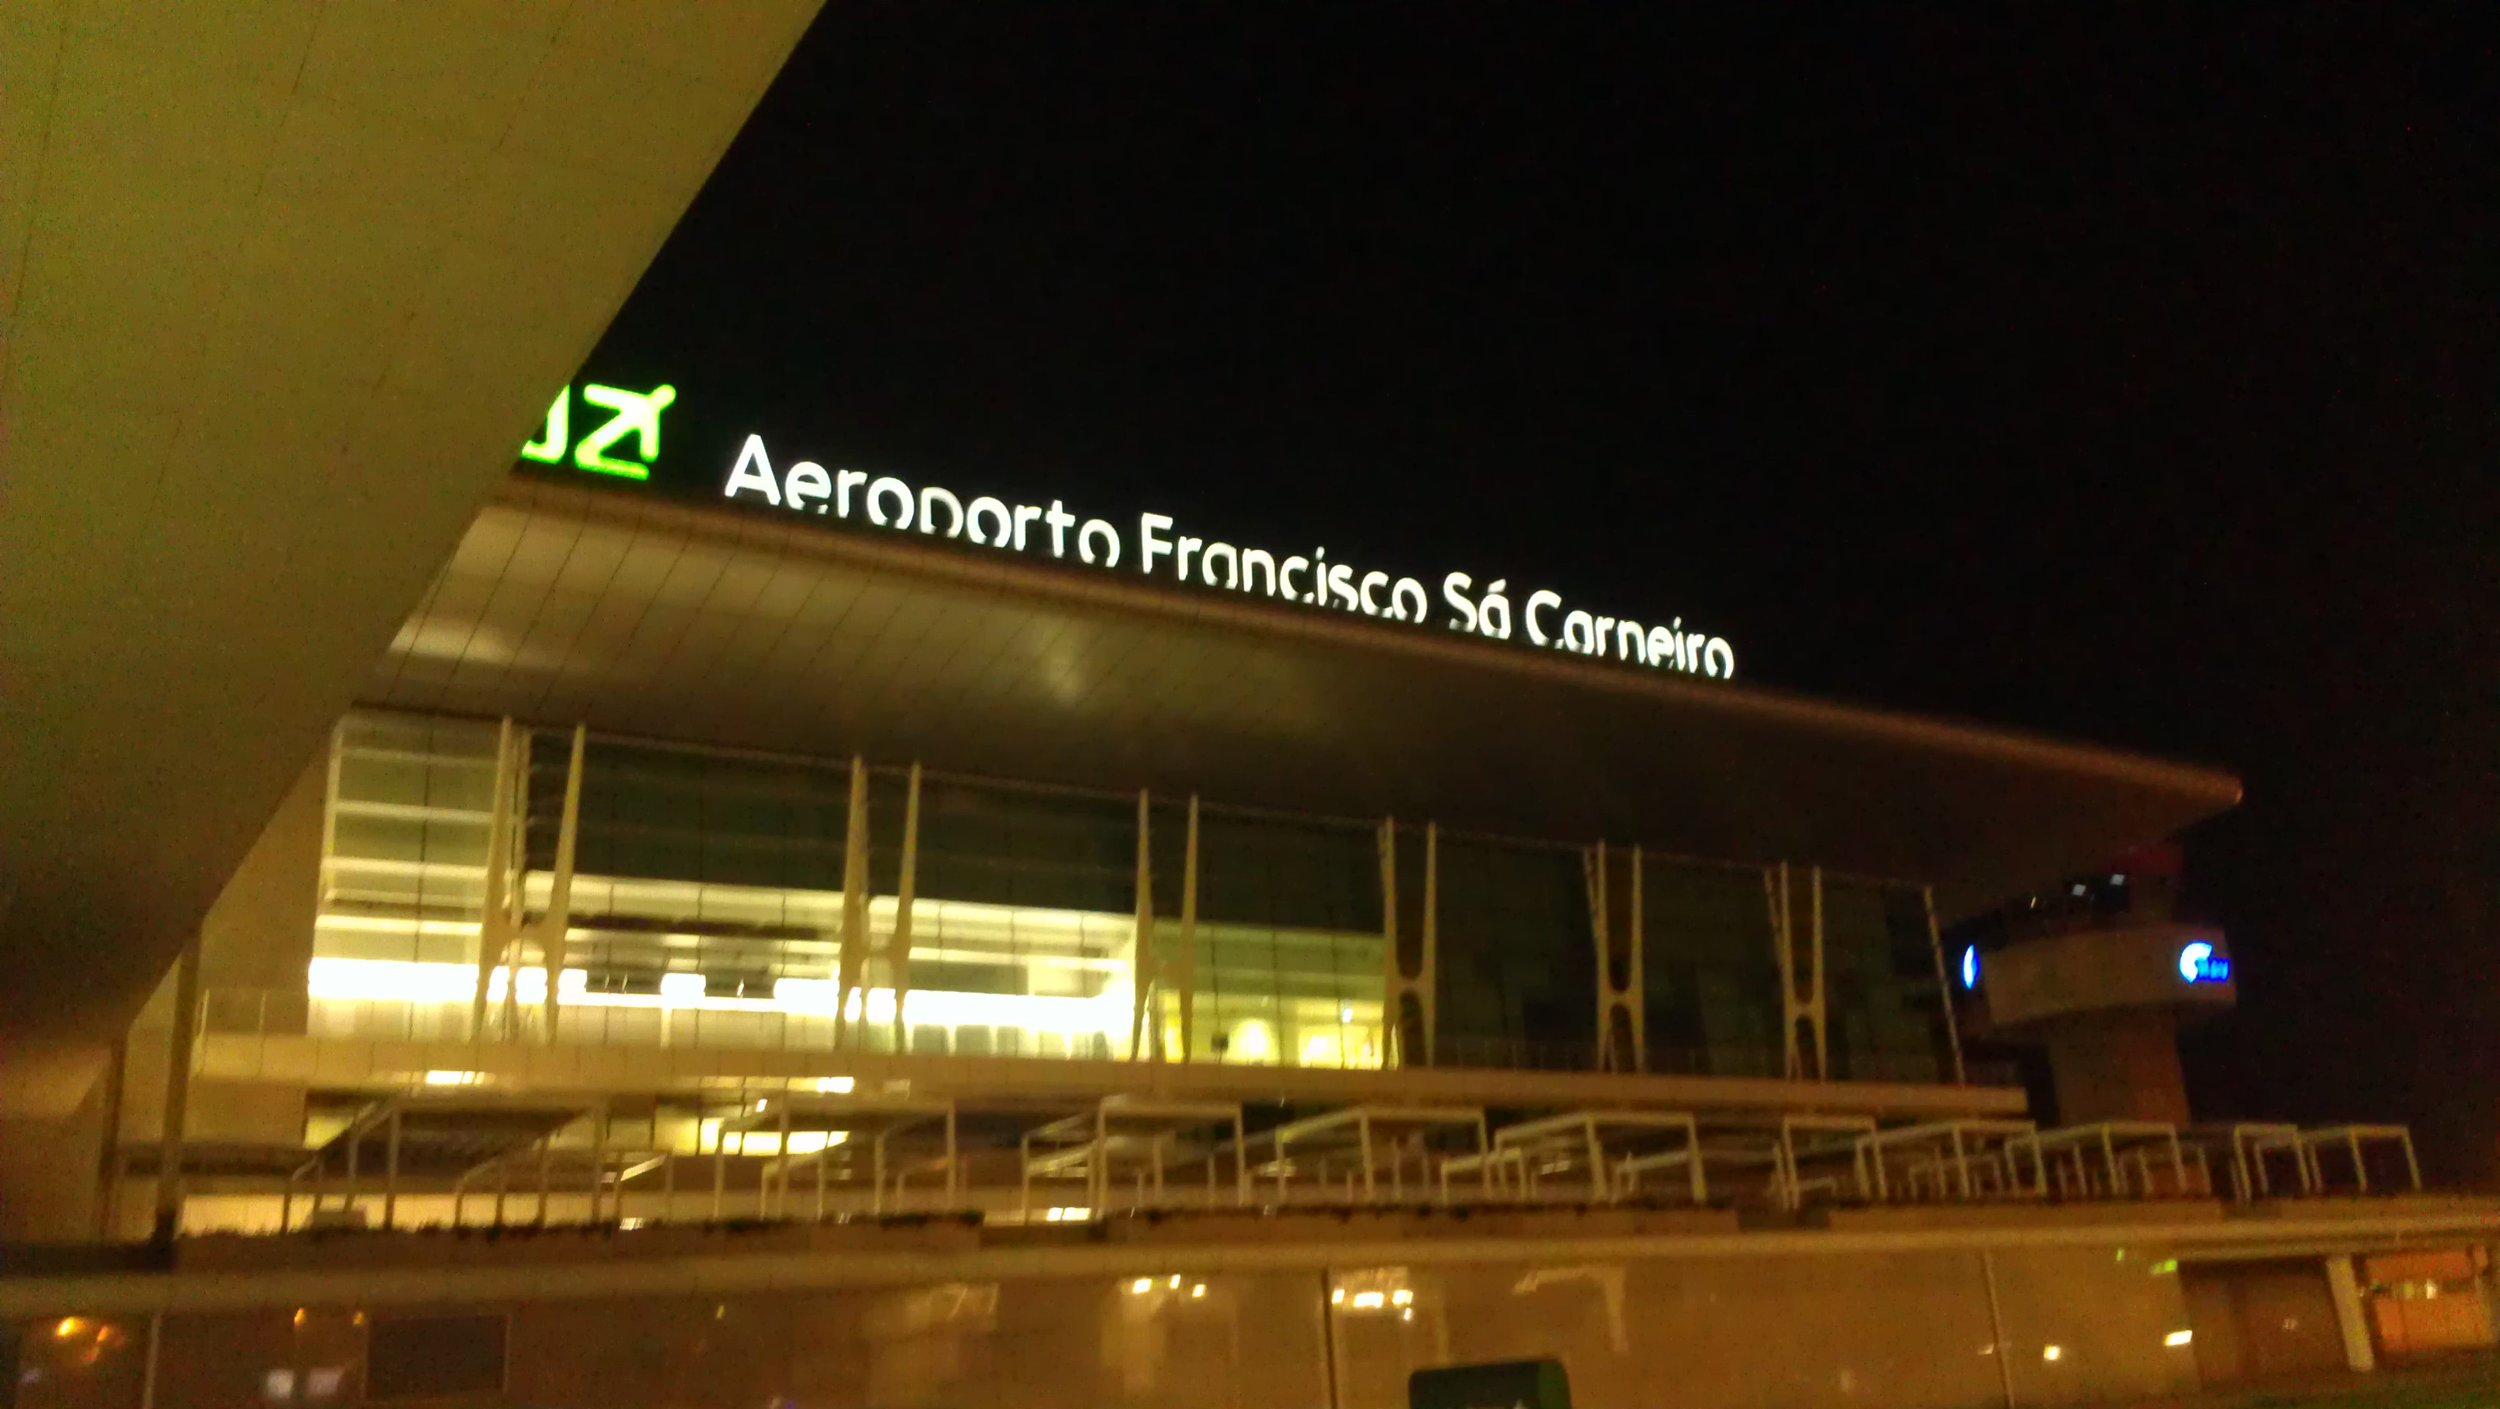 escape-from-portugal-oporto-airport